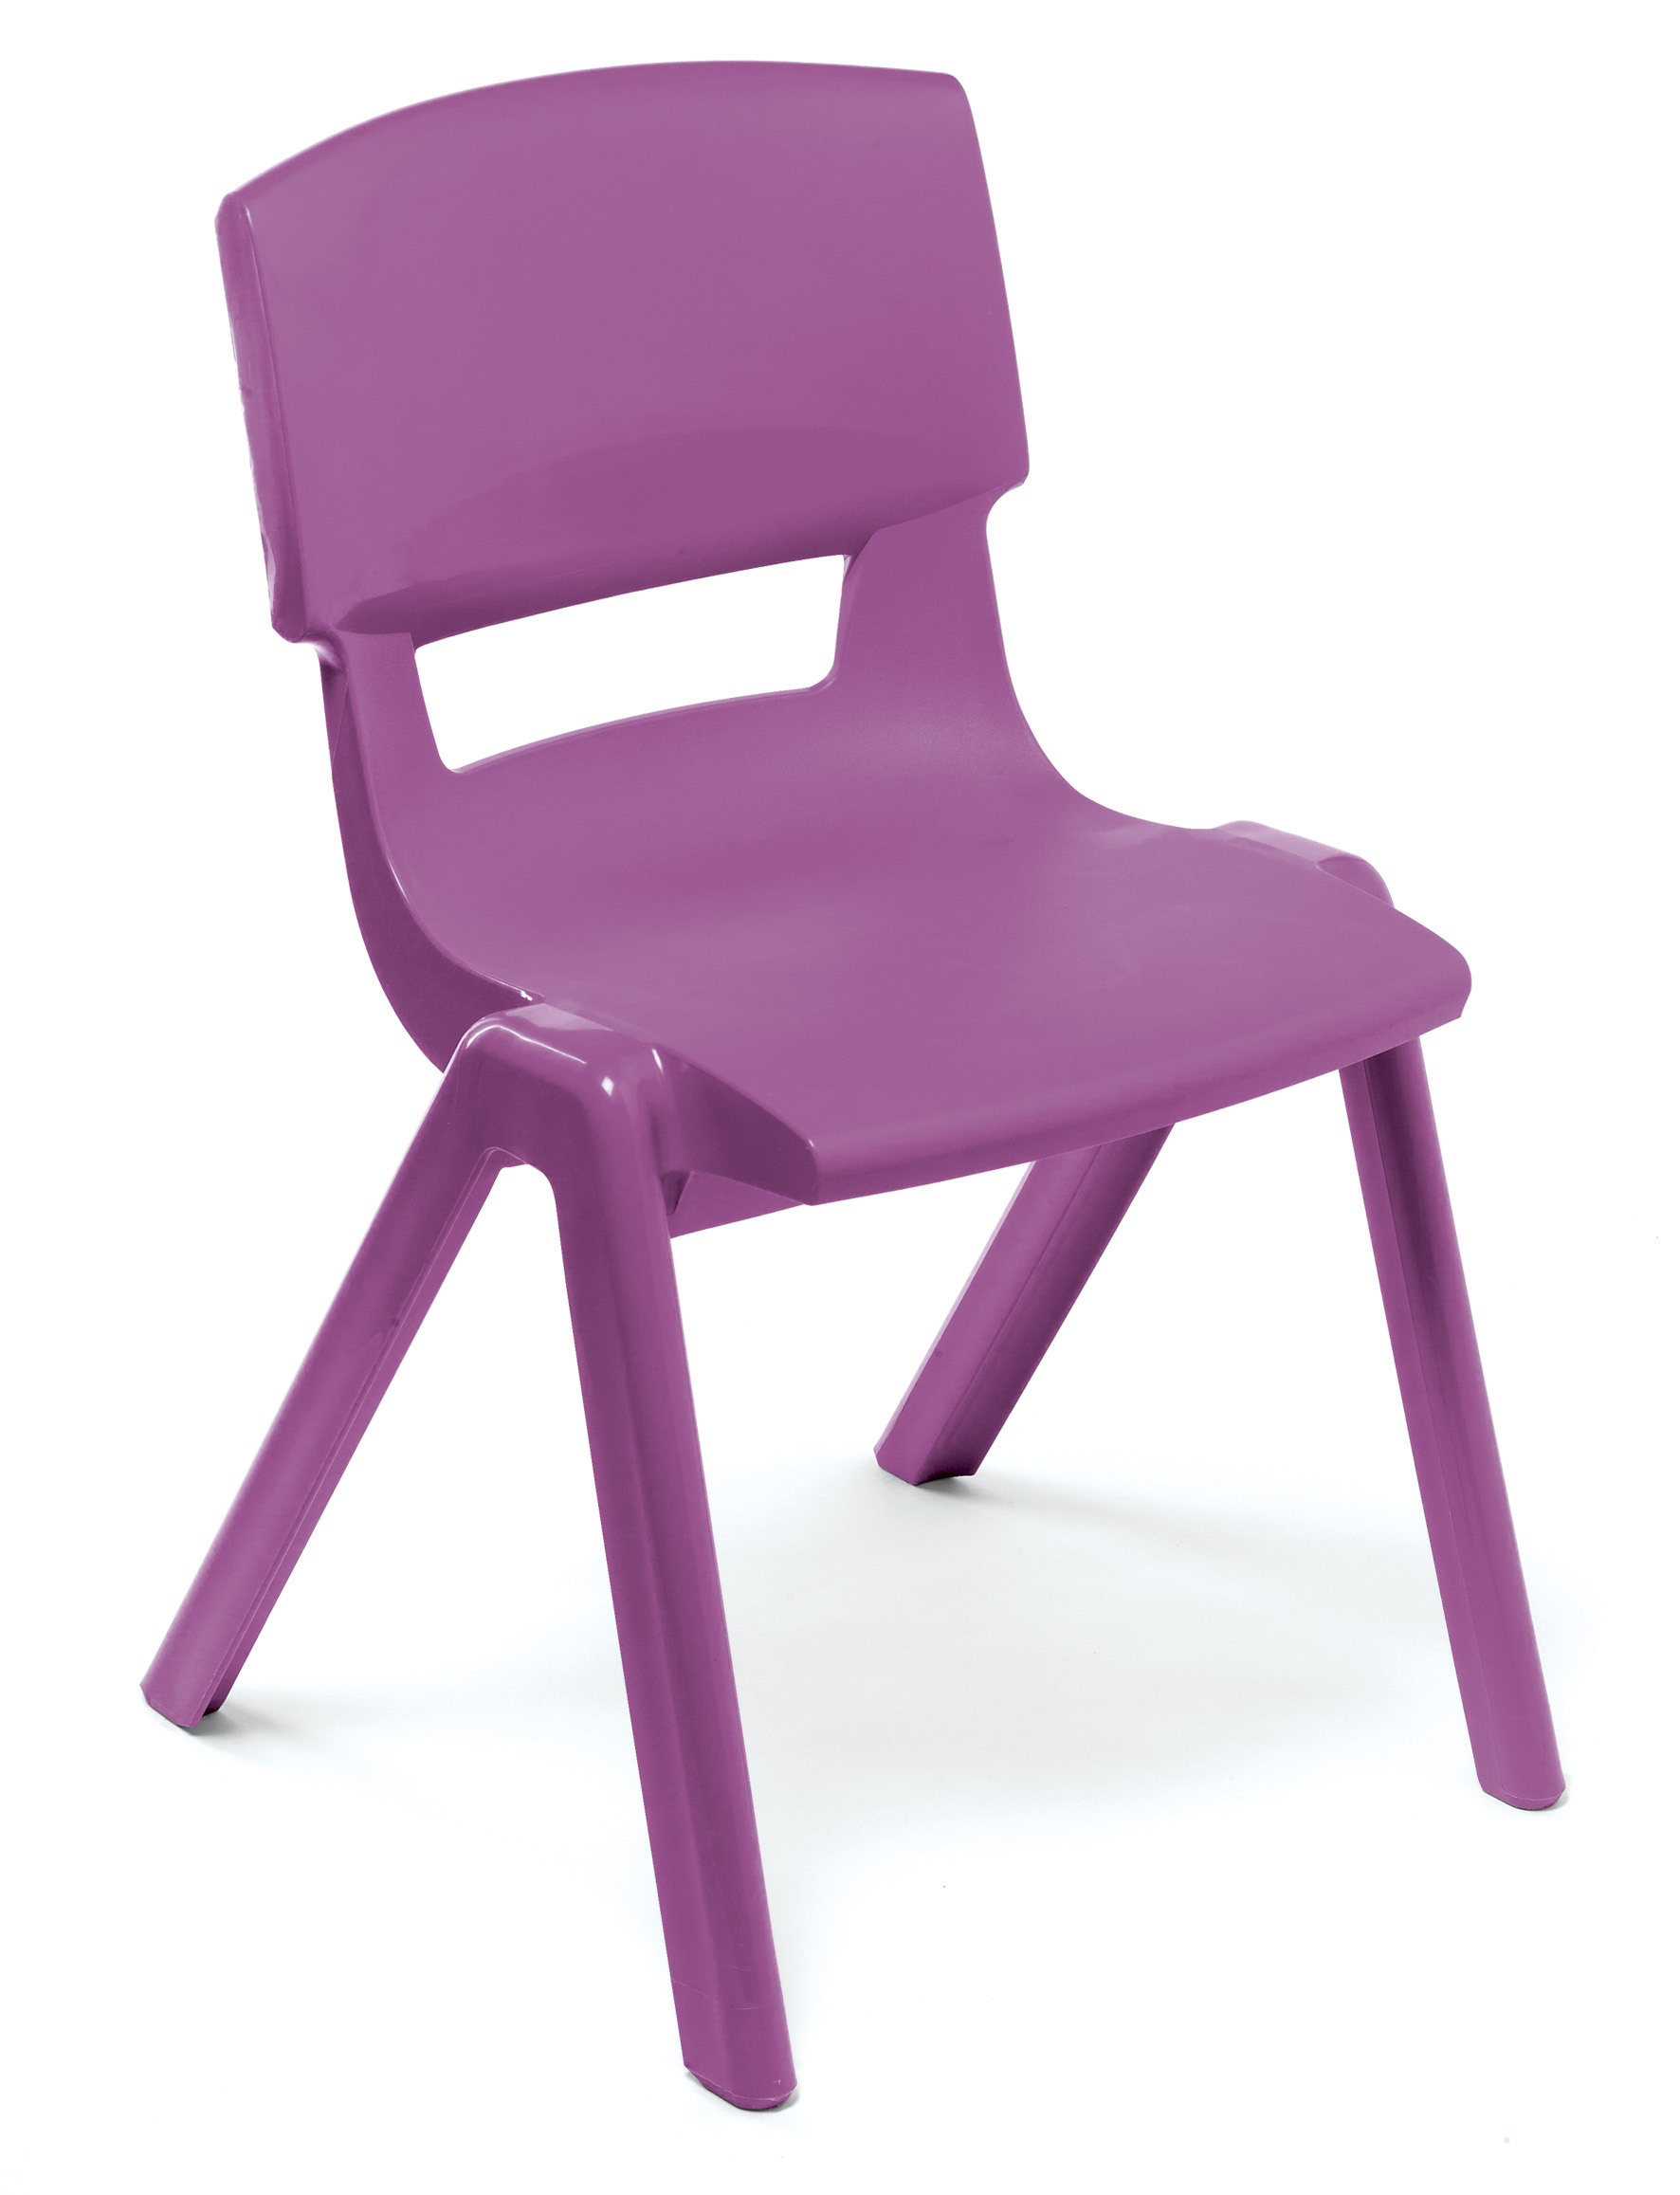 Postura education stacking chair simply tables chairs for School furniture